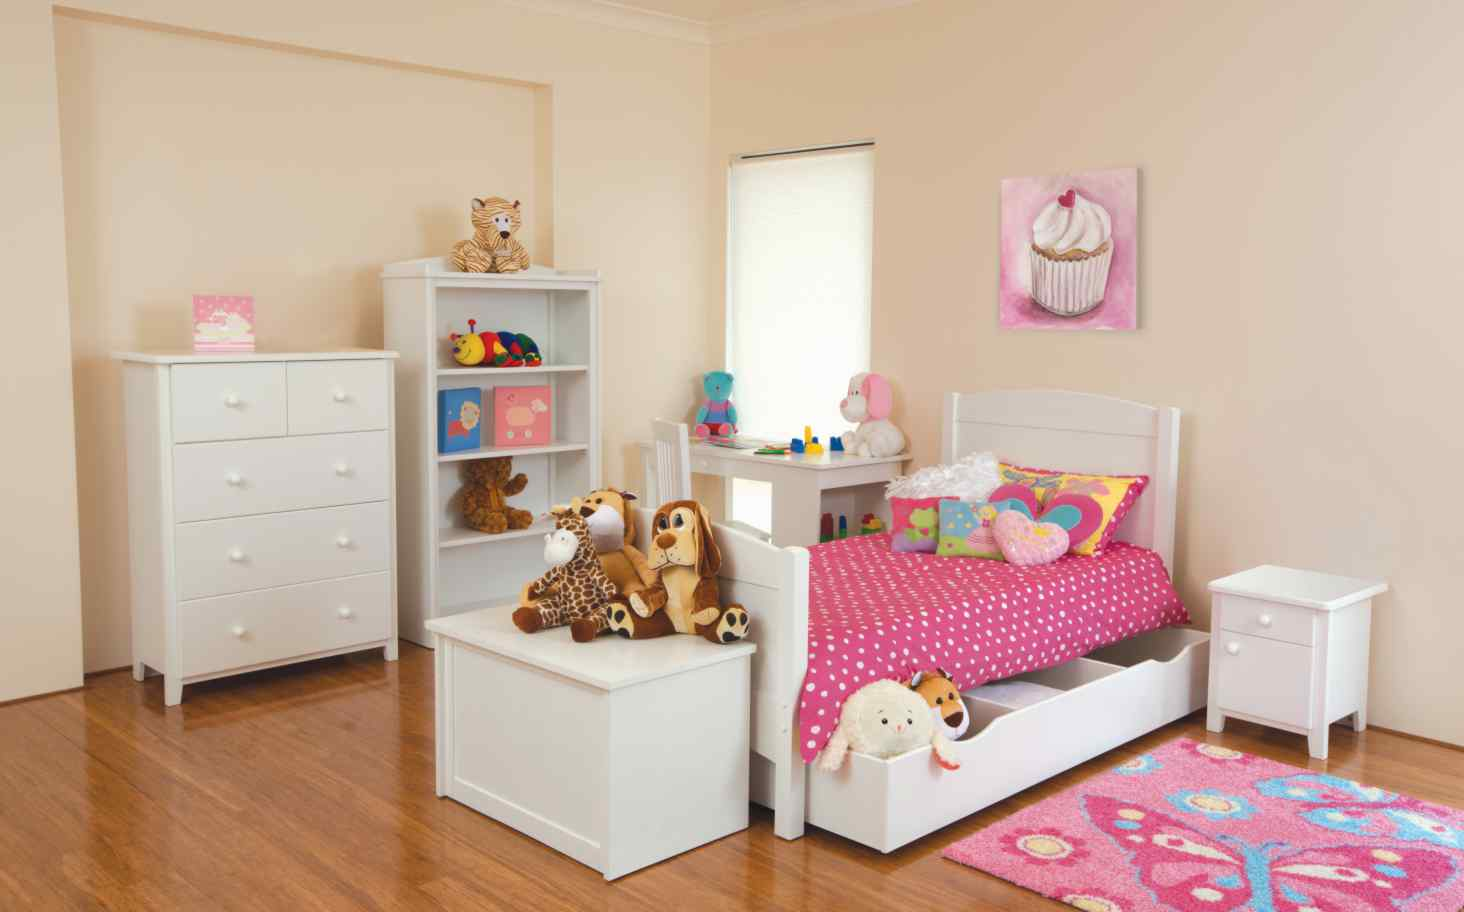 Kids Bedroom Furniture Perth Decor IdeasDecor Ideas